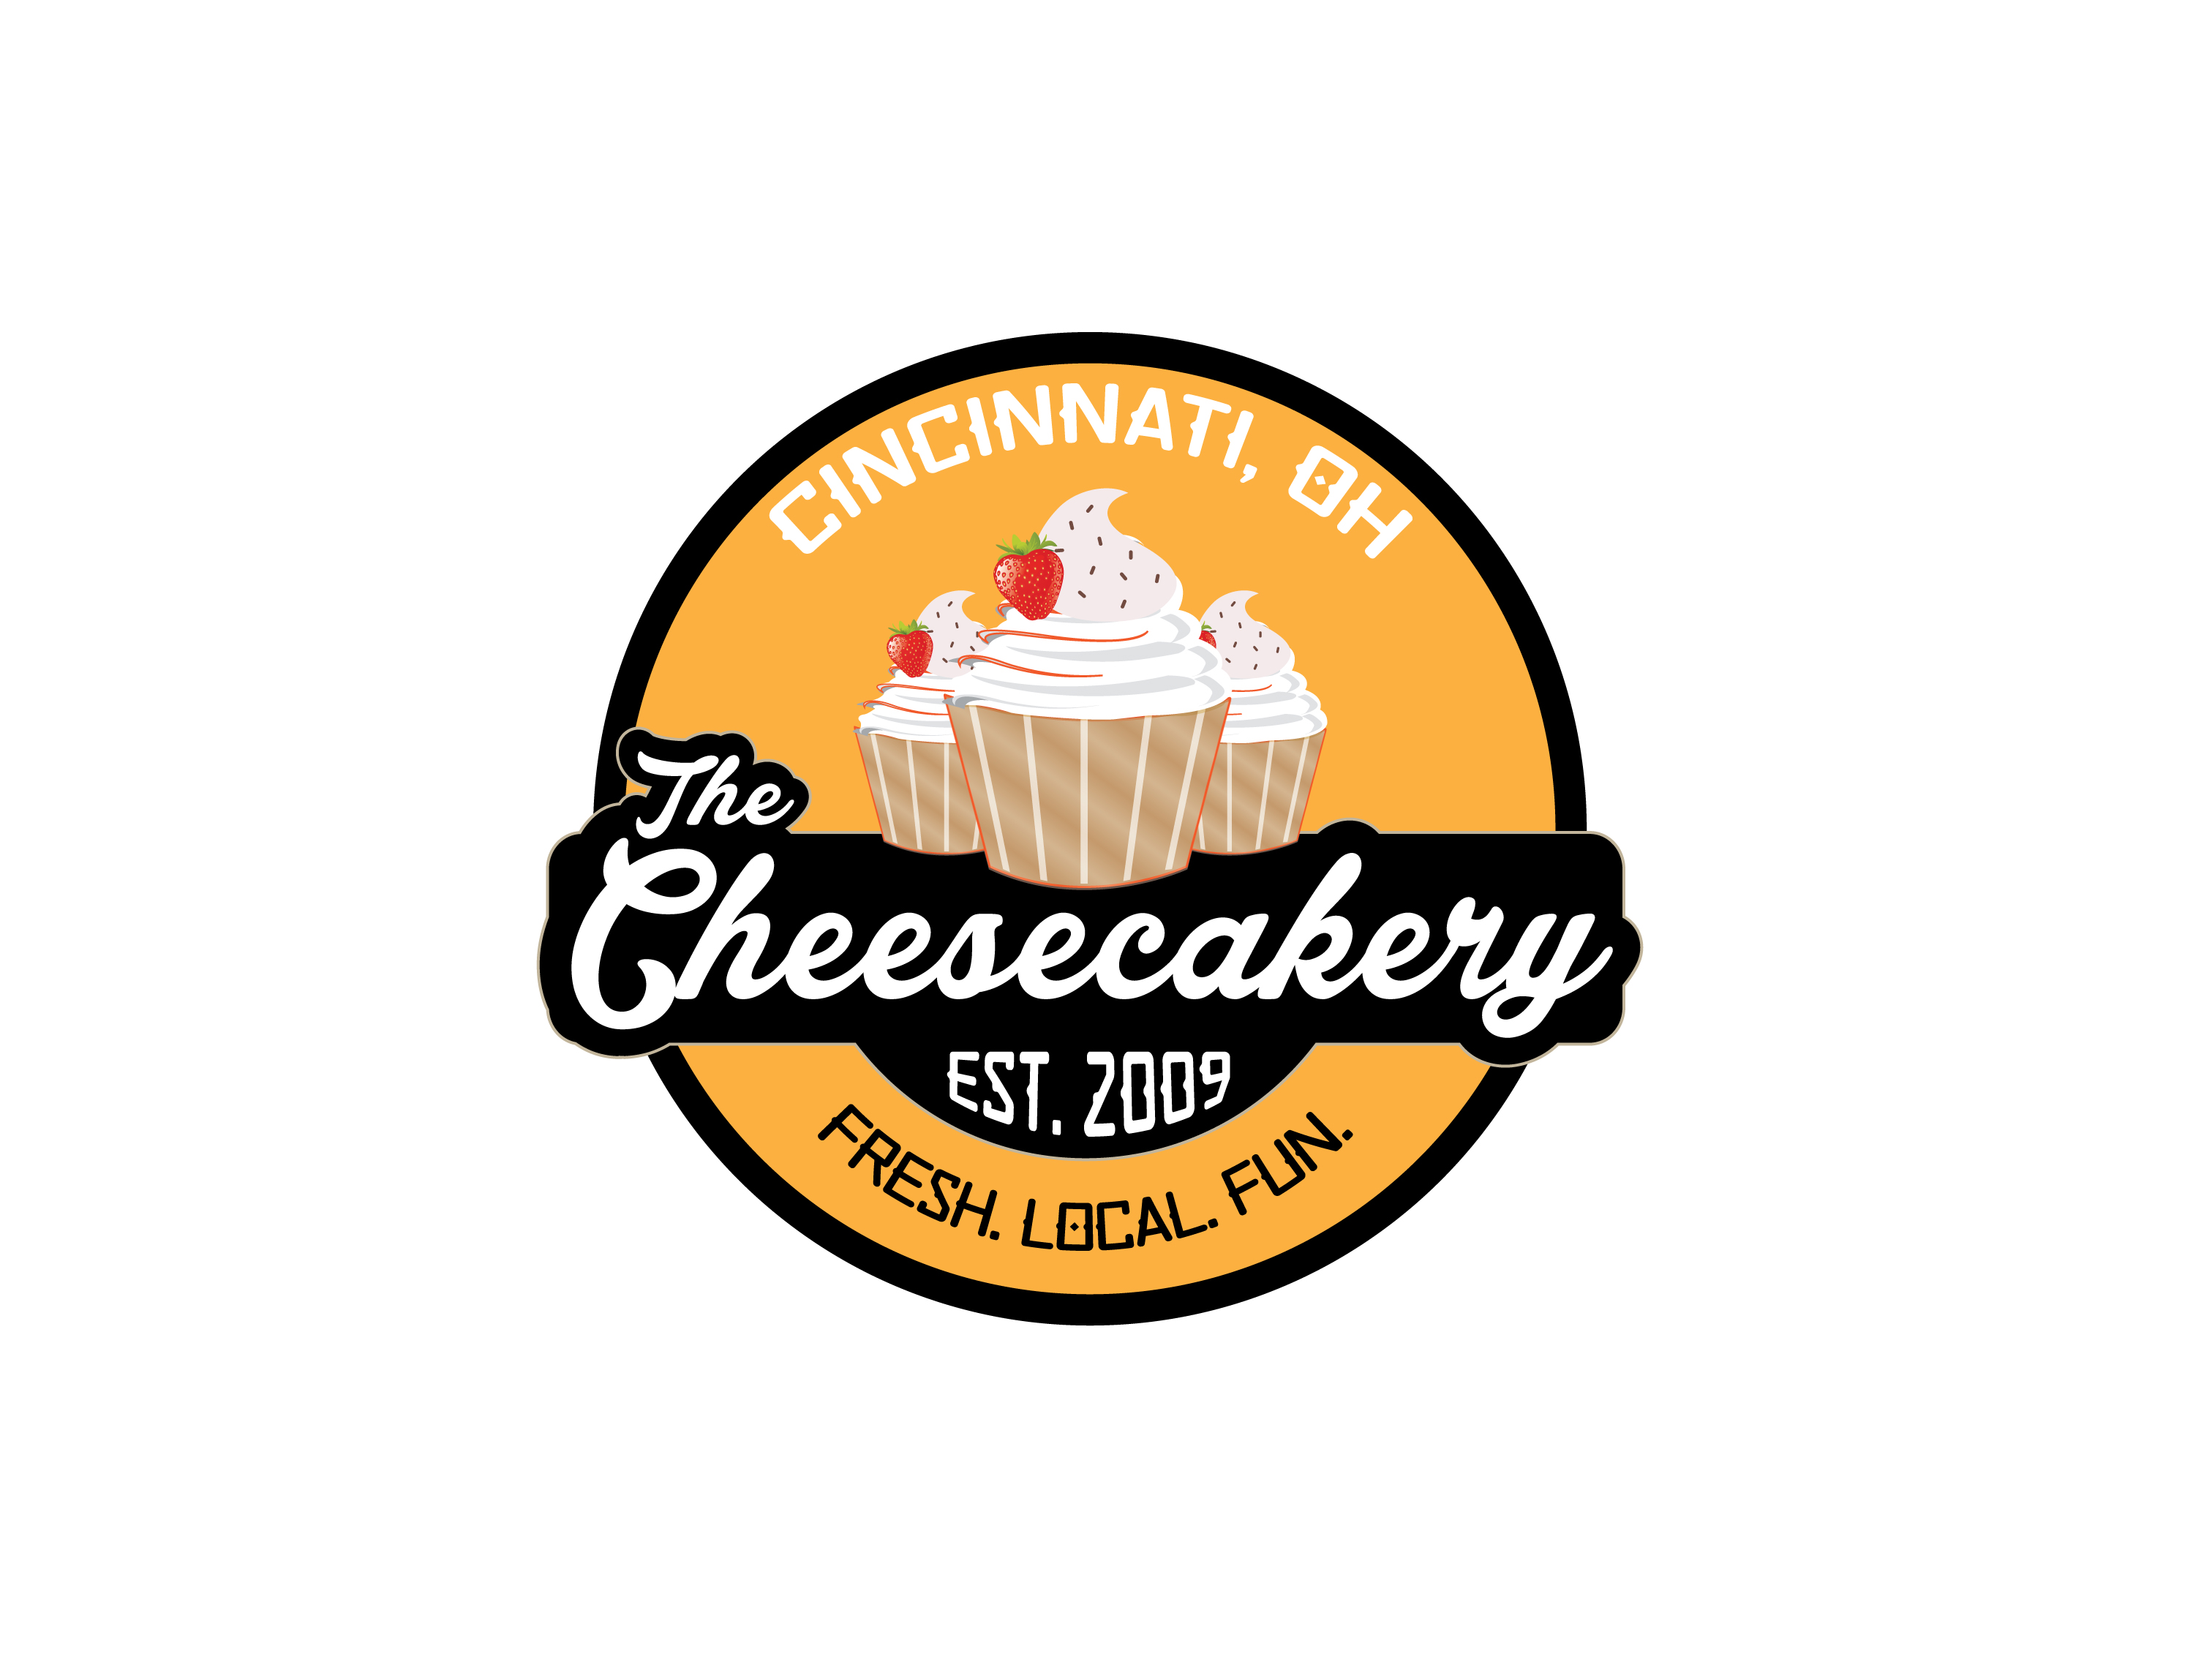 The Cheesecakery